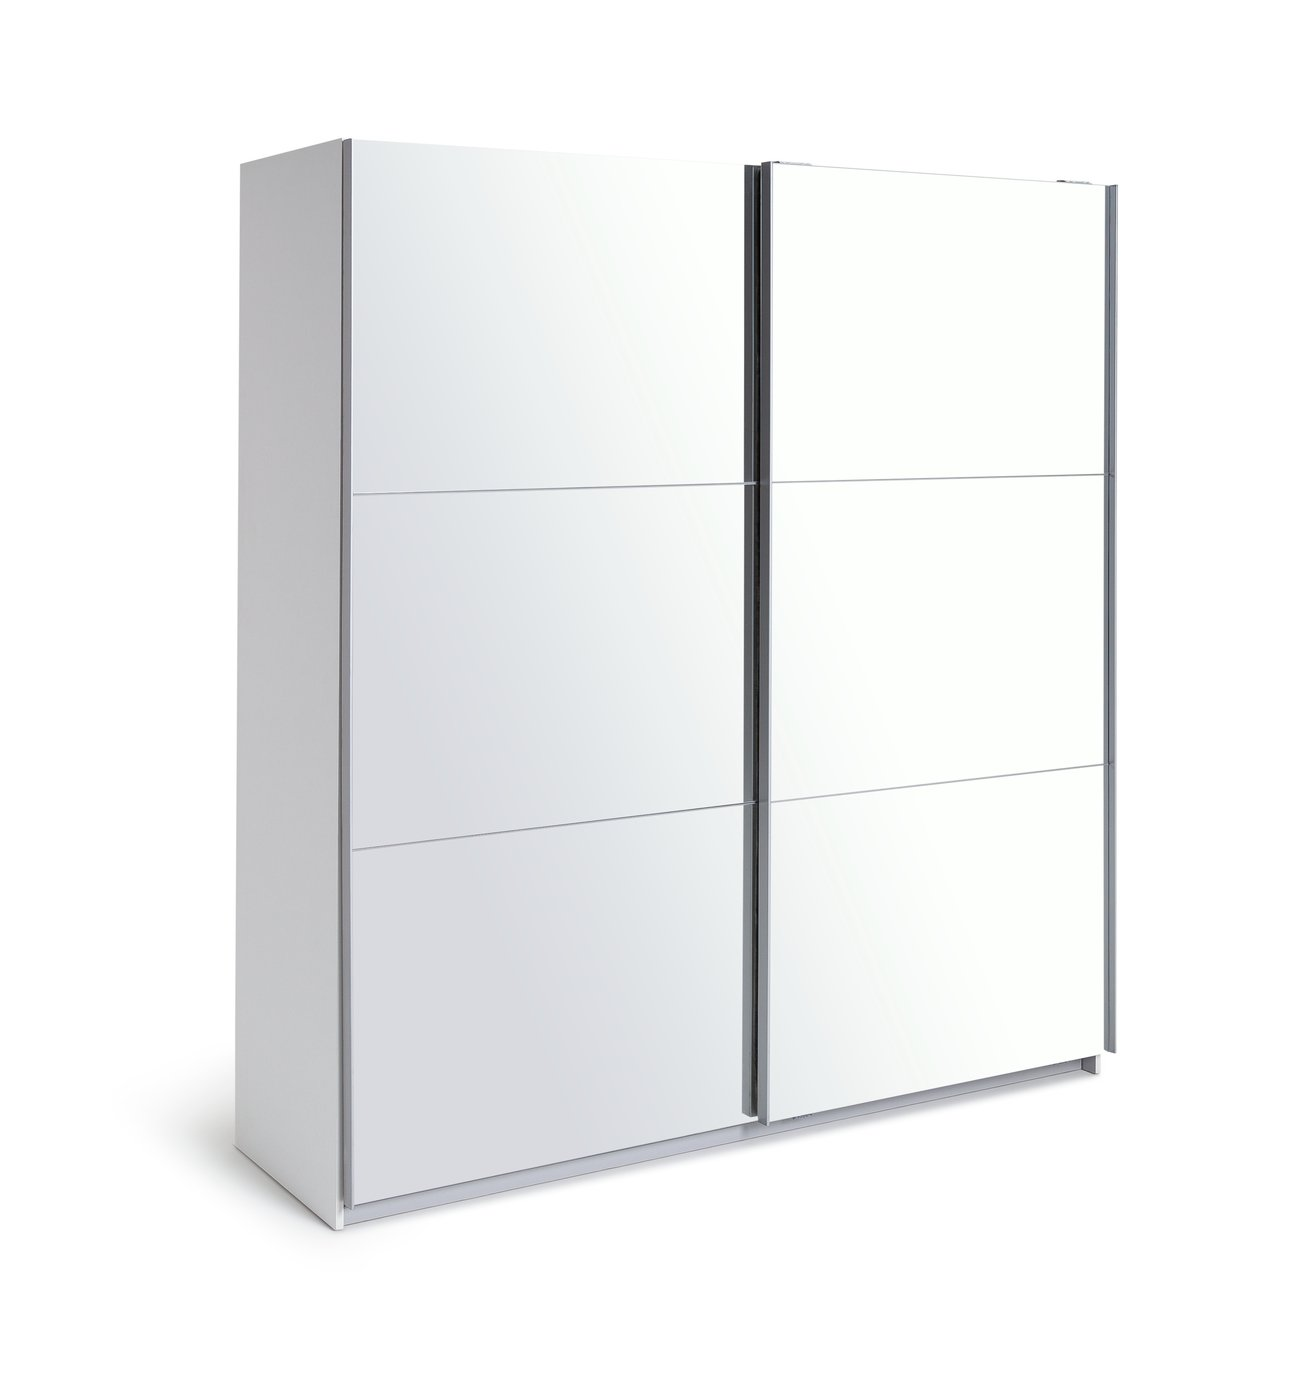 Argos Home Holsted Mirrored Large Sliding Wardrobe - White